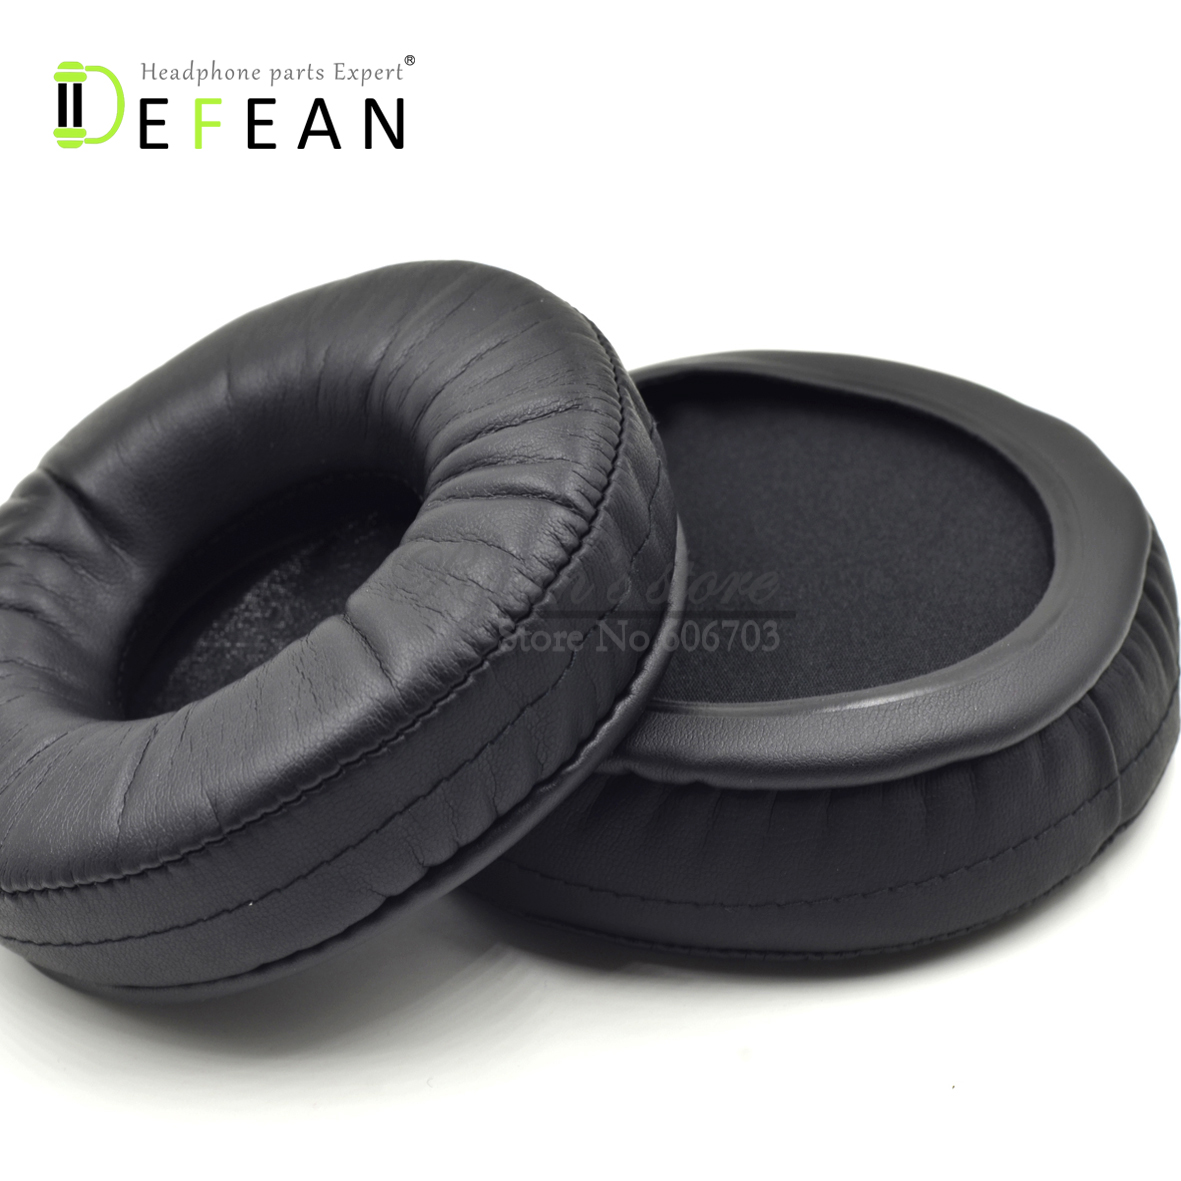 Earbuds covers silicone - sennheiser earbuds case